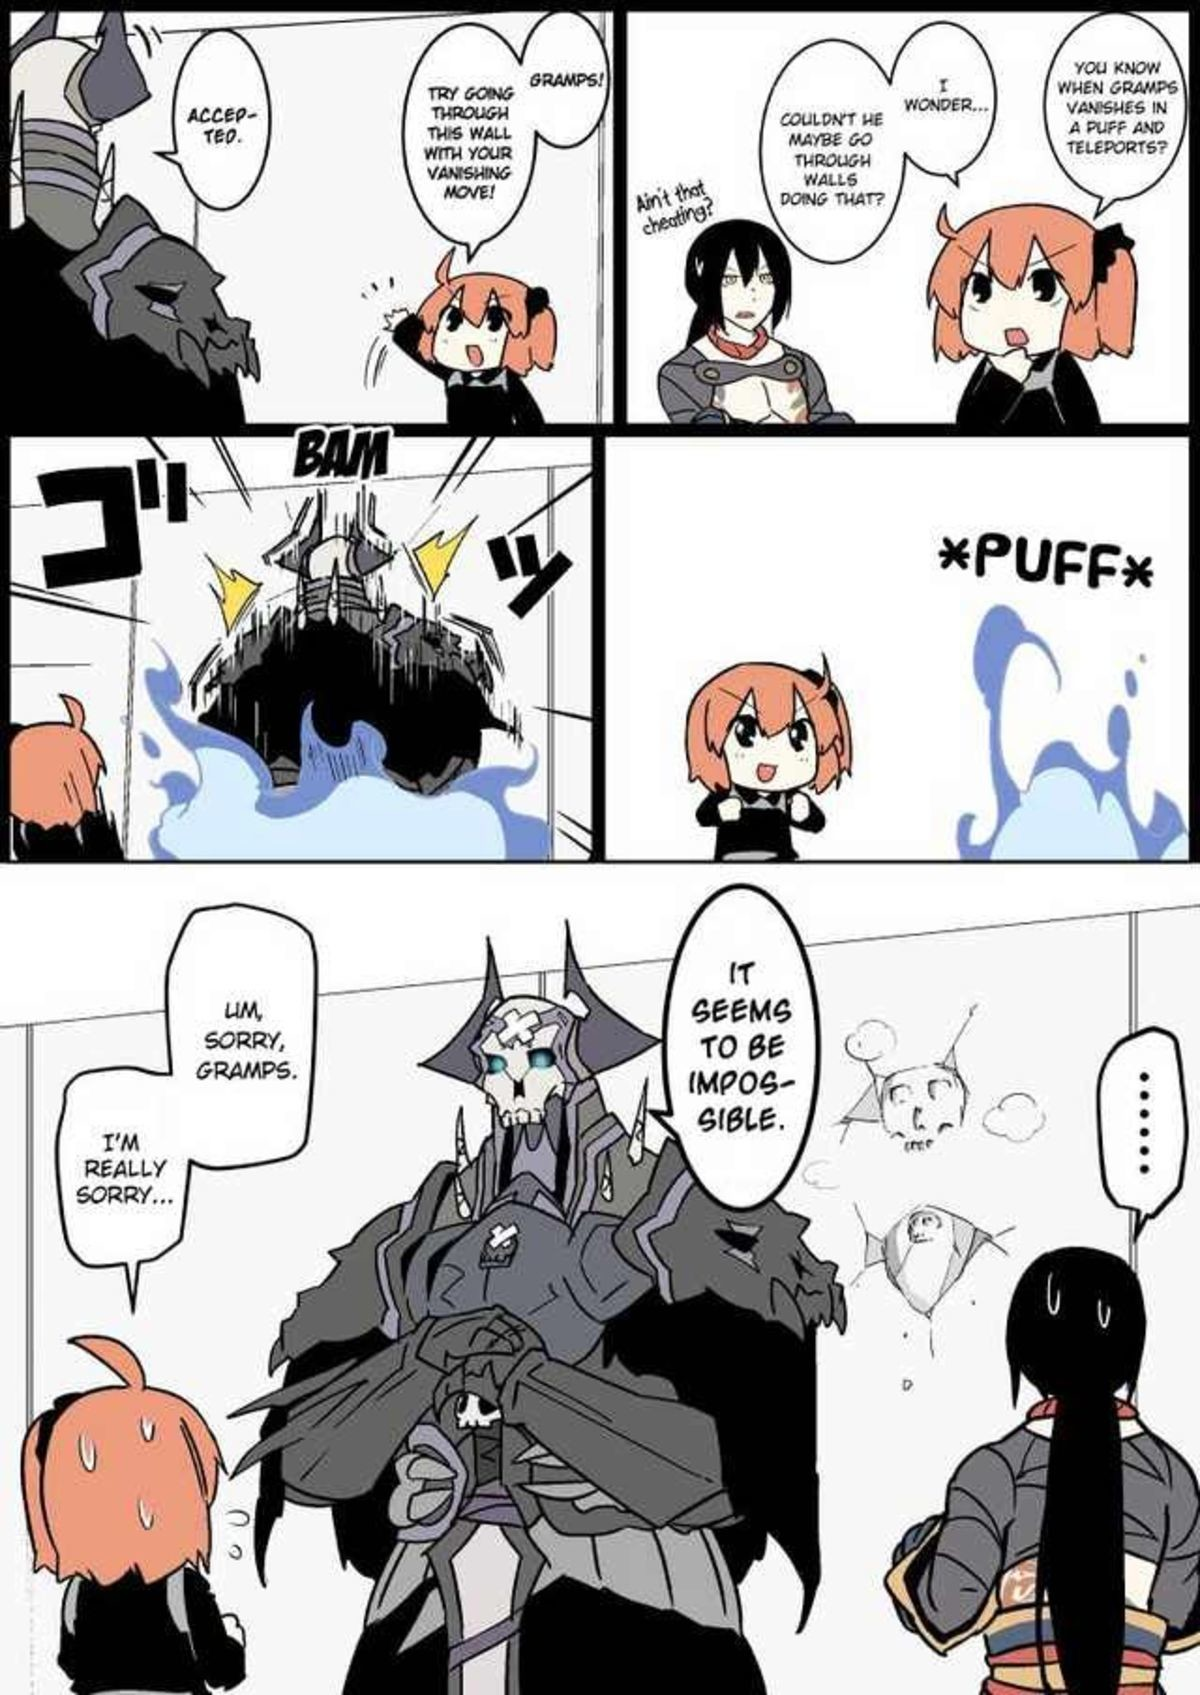 Teleportation. join list: WeLoveGramps (795 subs)Mention History.. I guess that implies that he doesn't teleport, but rather, he goes invisible and moves really fast.